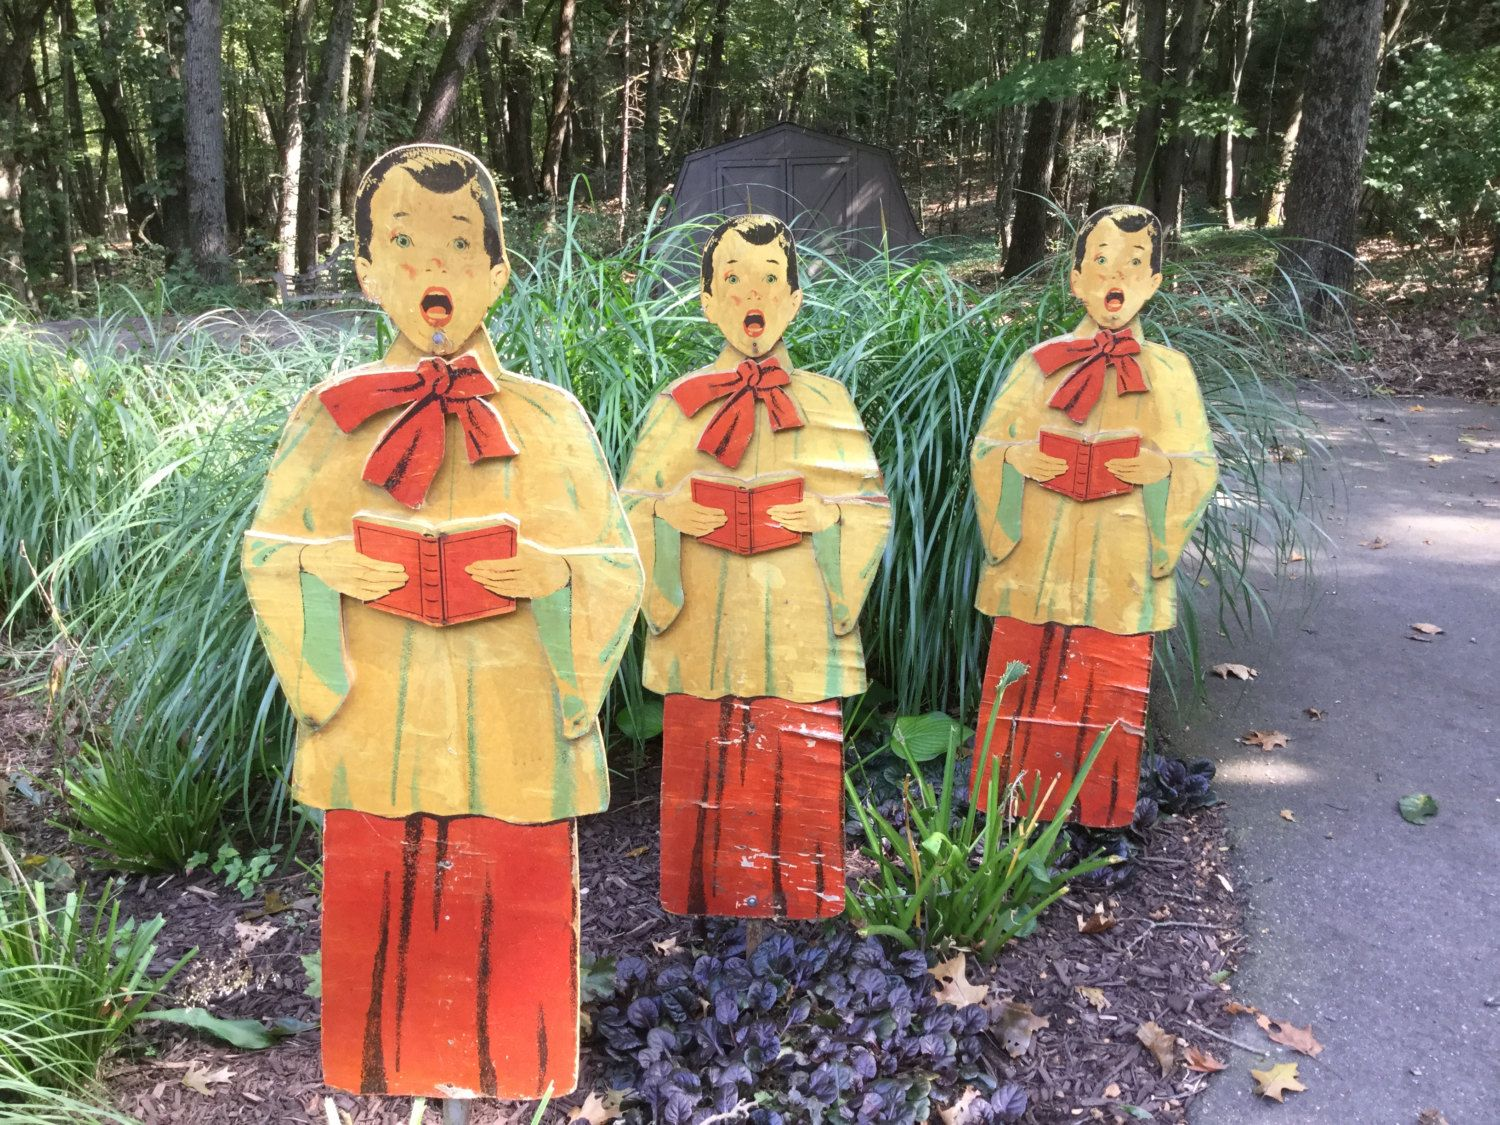 Vintage Outdoor Christmas Decorations For Sale.Vintage Trio Wood Singing Carolers Choirboy Christmas Yard